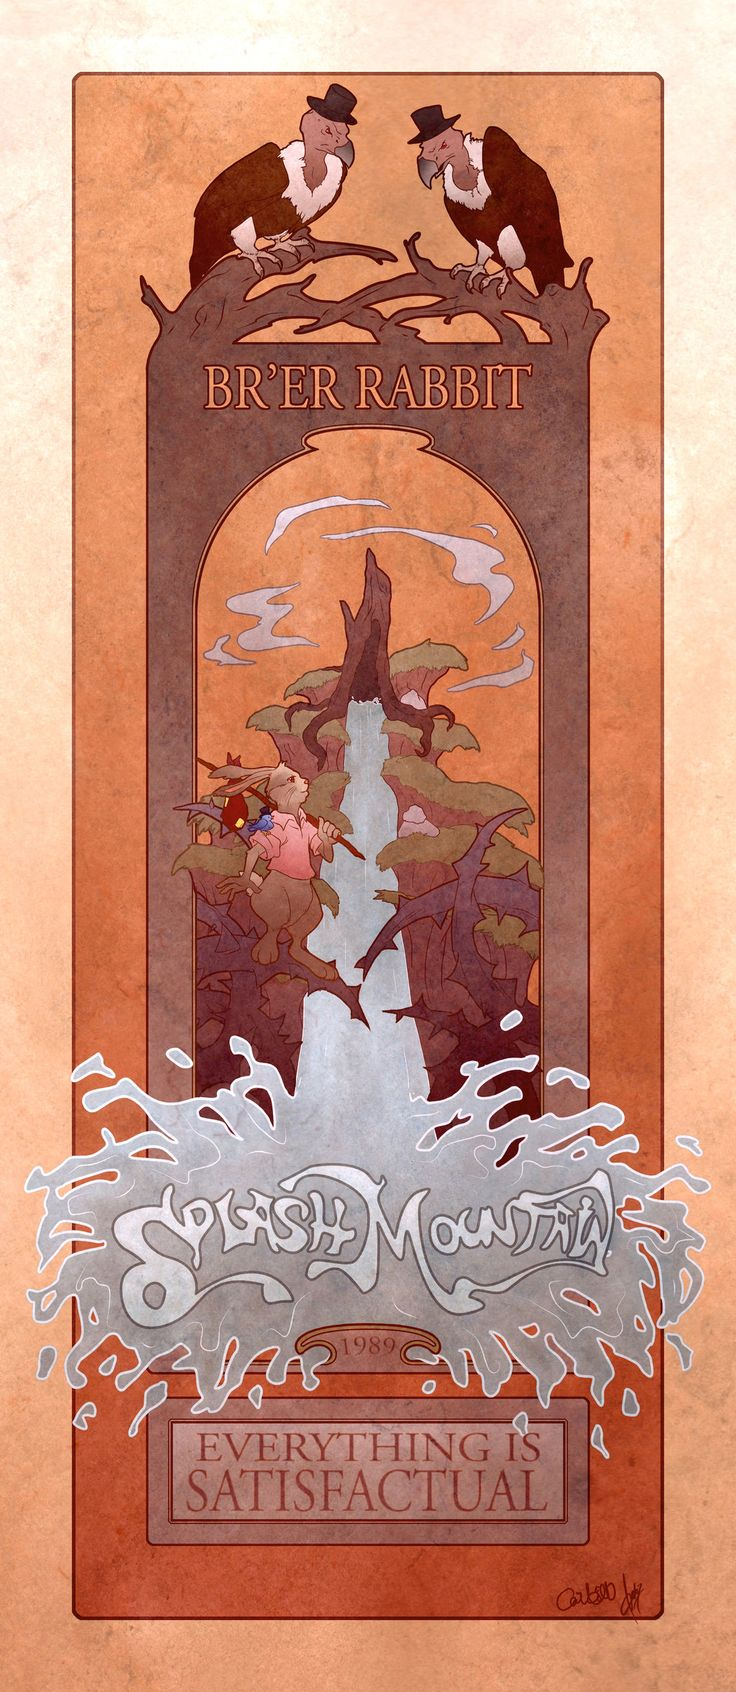 Splash Mountain poster with a nouveau/Alphonse Mucha twist.